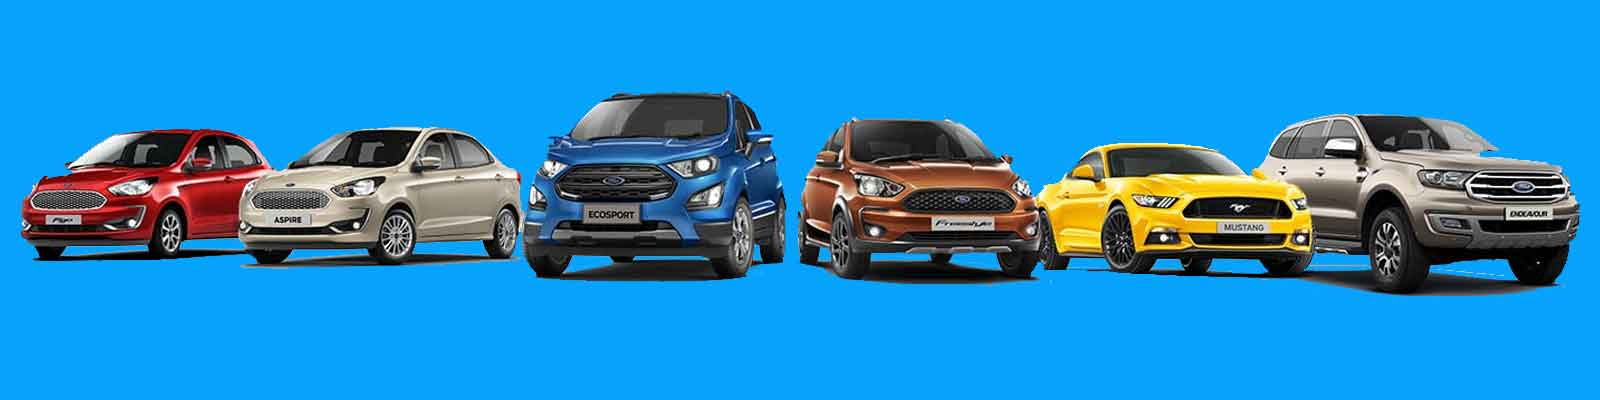 Ford Cars In India 2020 Upcoming Ford Cars Price Models Updates